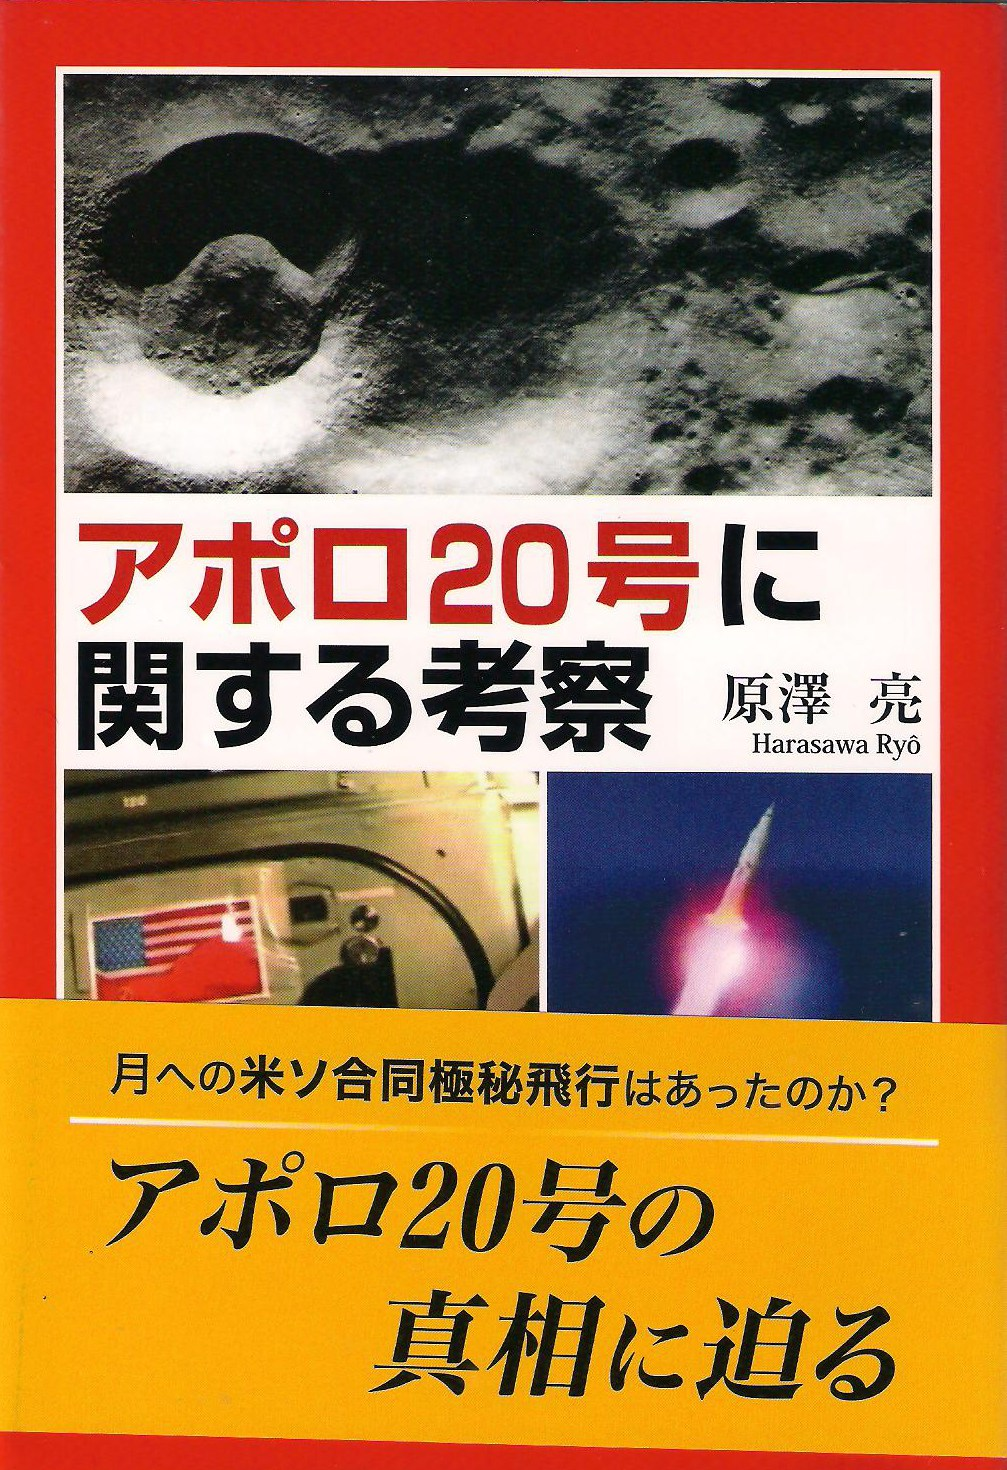 Apollo 20, by